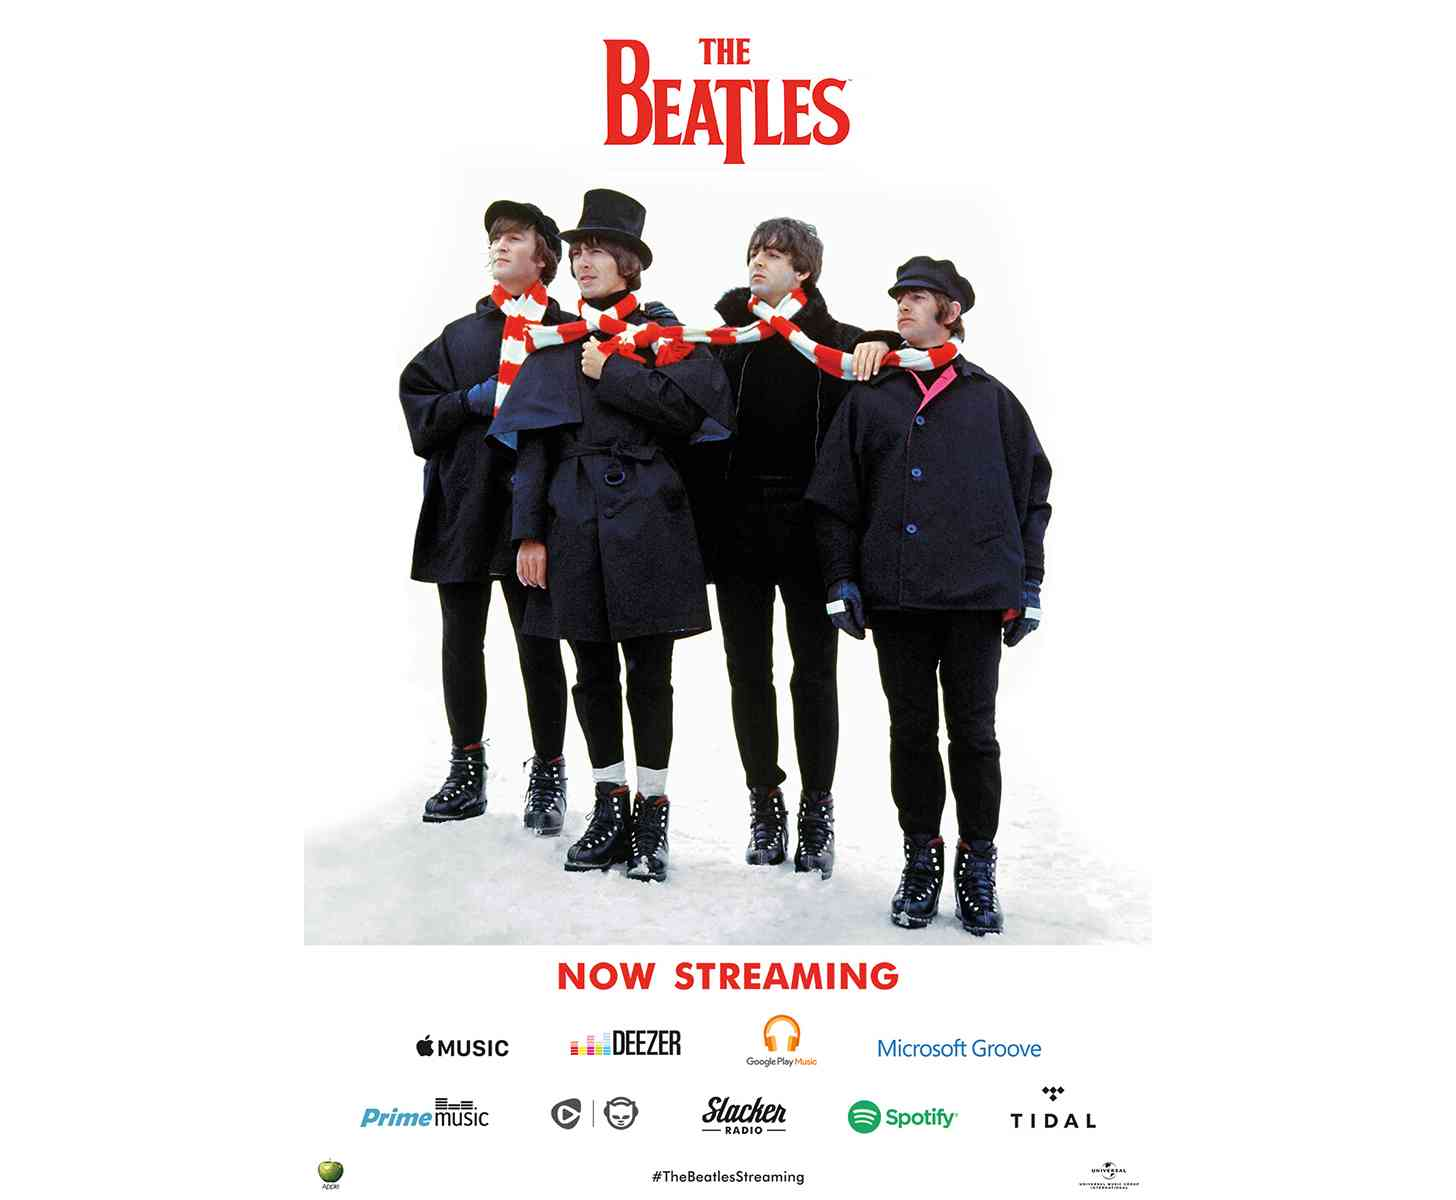 The Beatles streaming music services